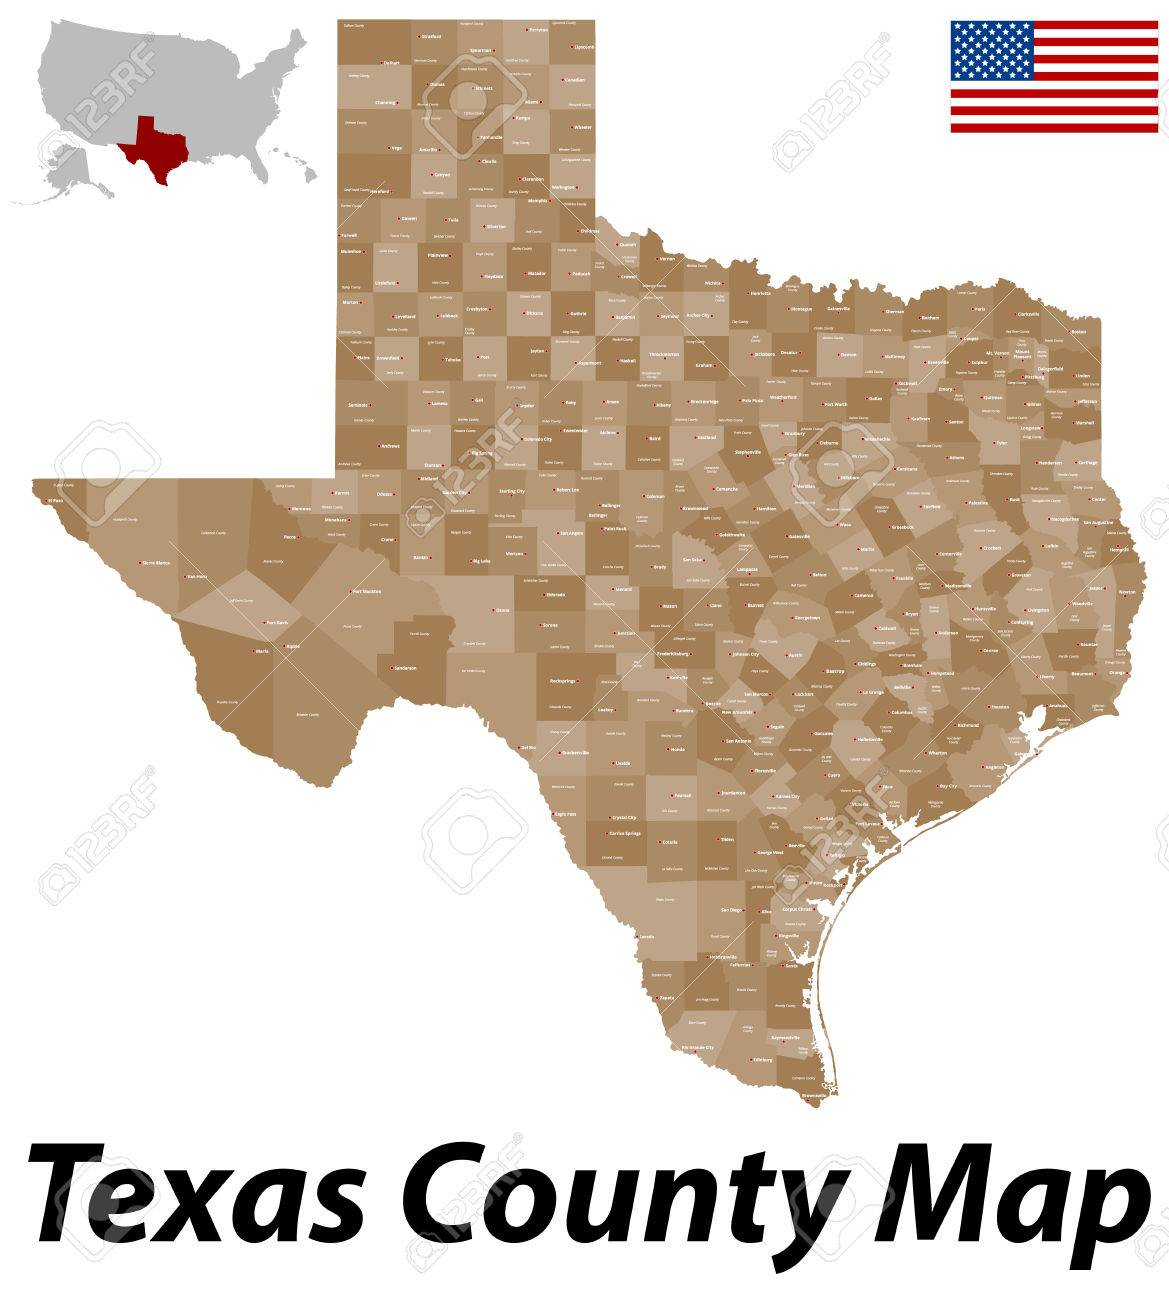 State Of Texas Counties Map.A Large And Detailed Map Of The State Of Texas Counties And County